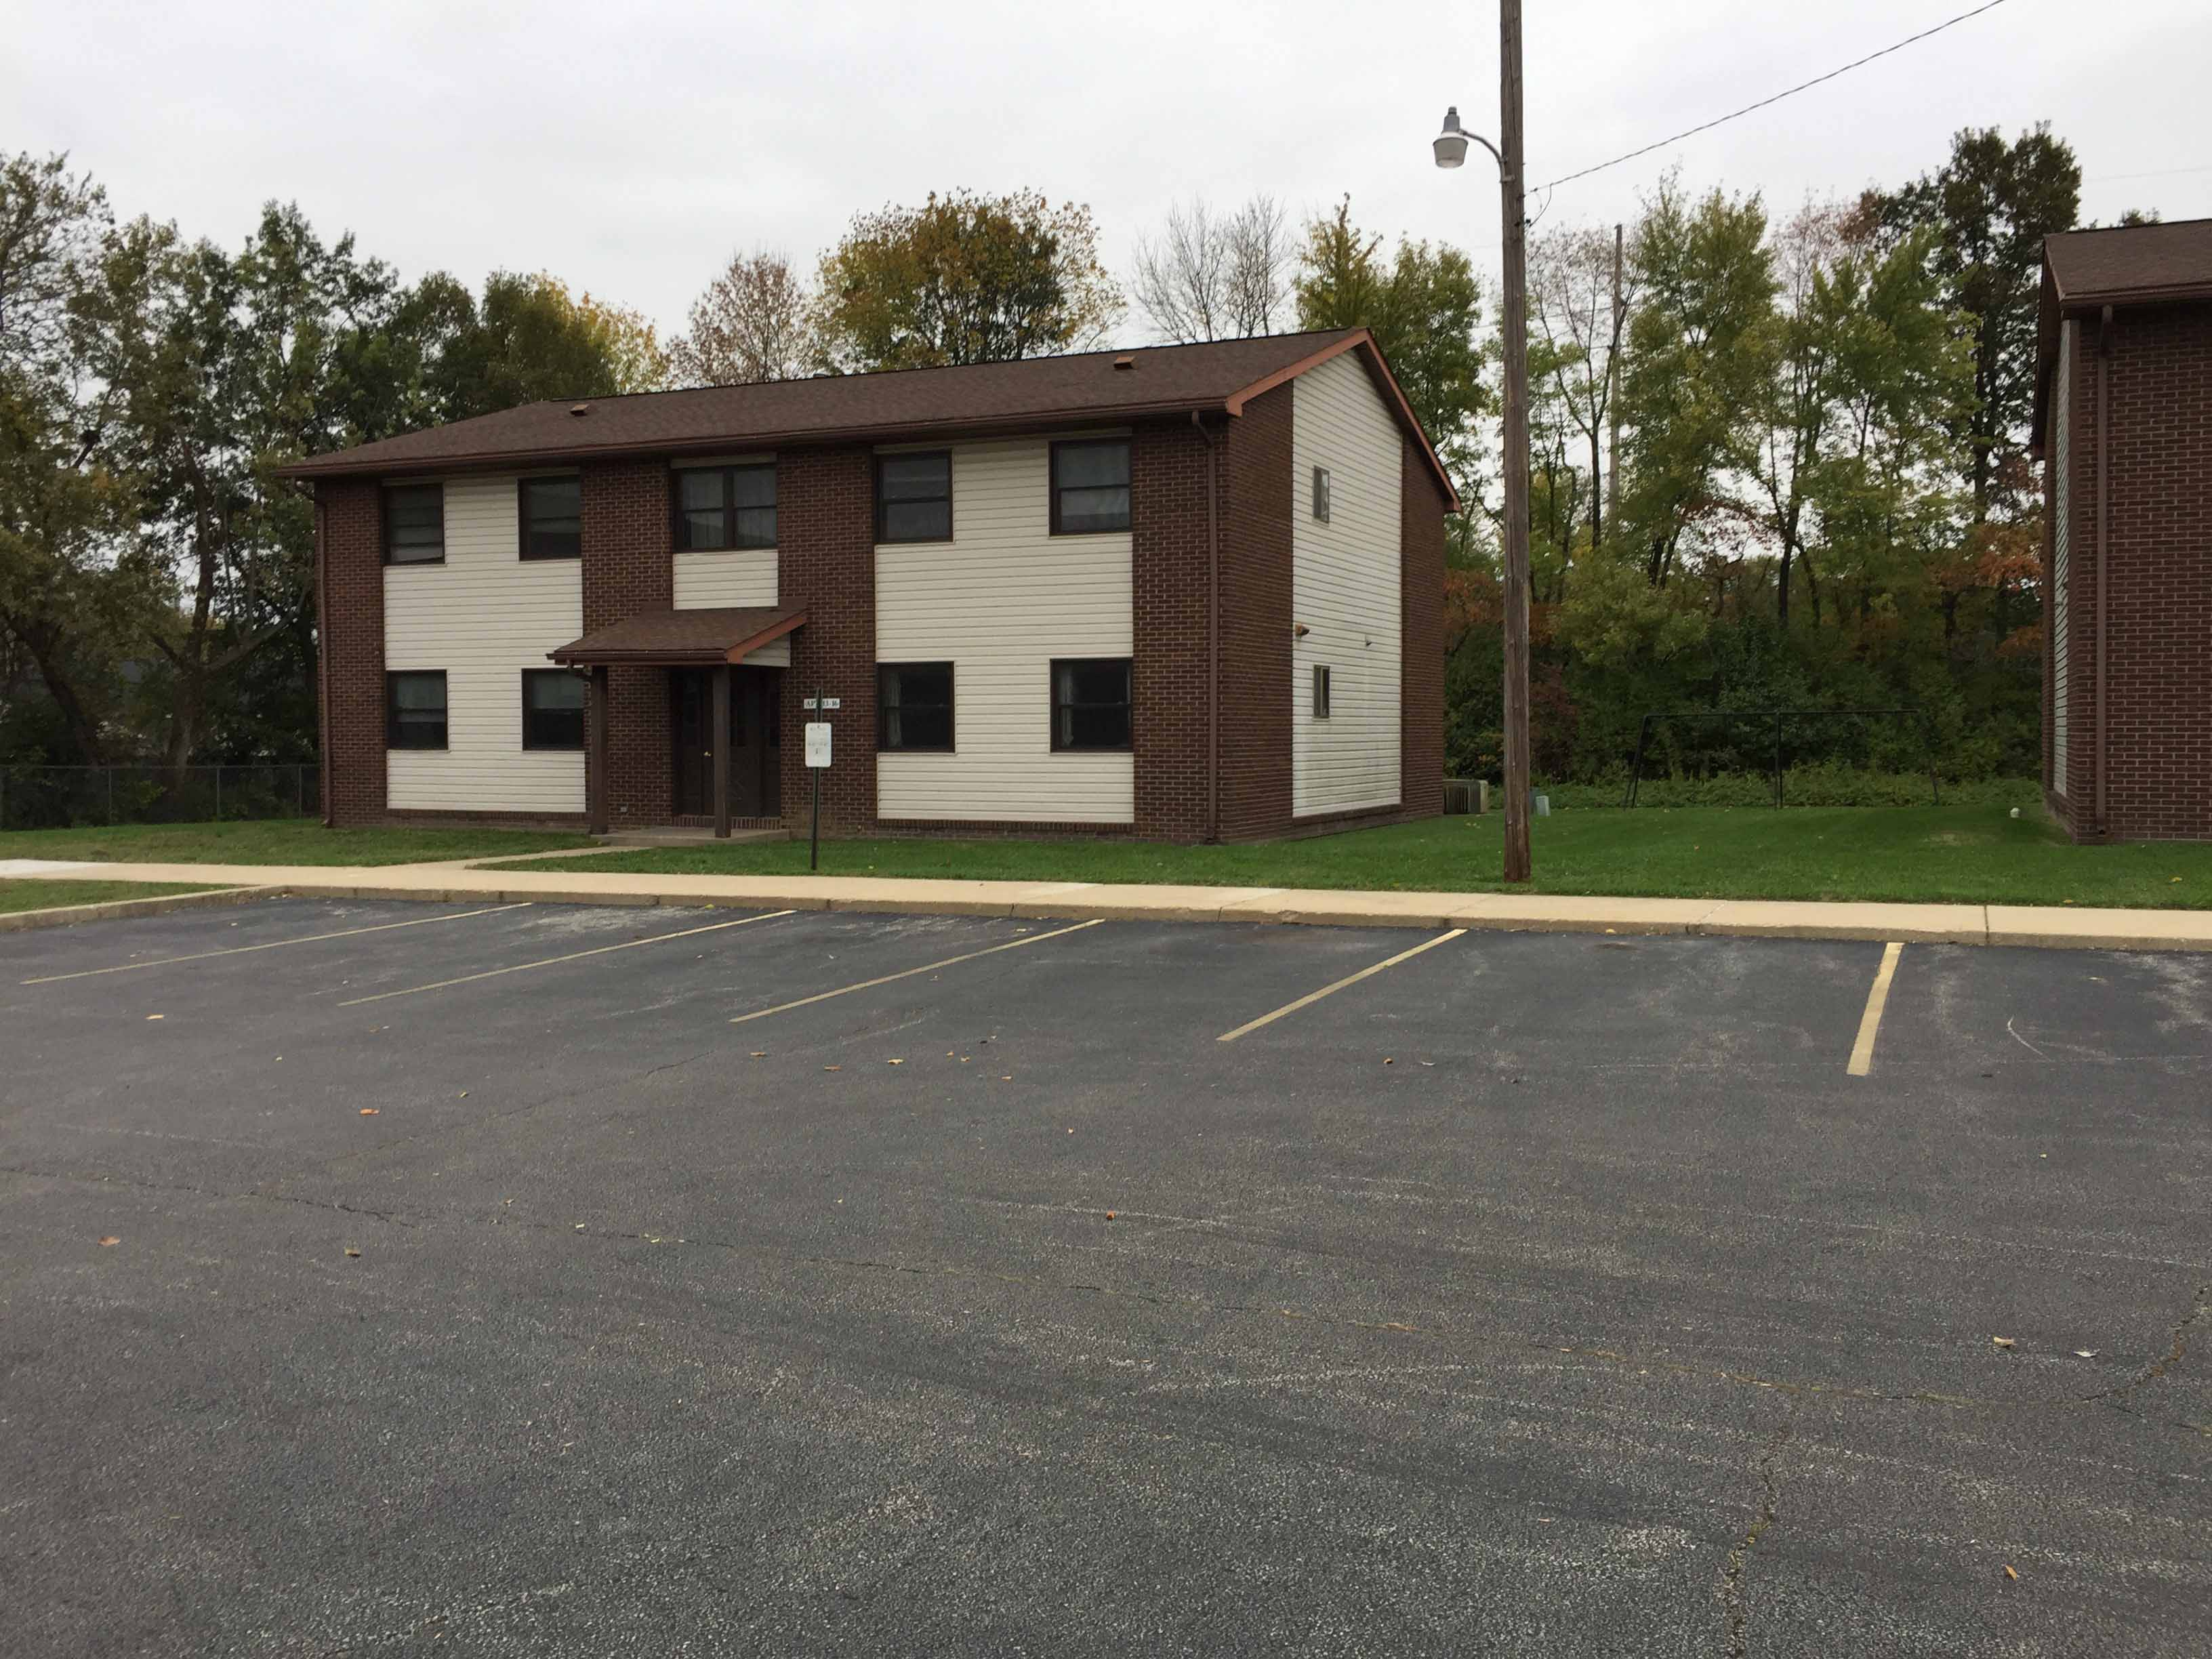 Image of Lincoln Court Apartments in Riverton, Illinois